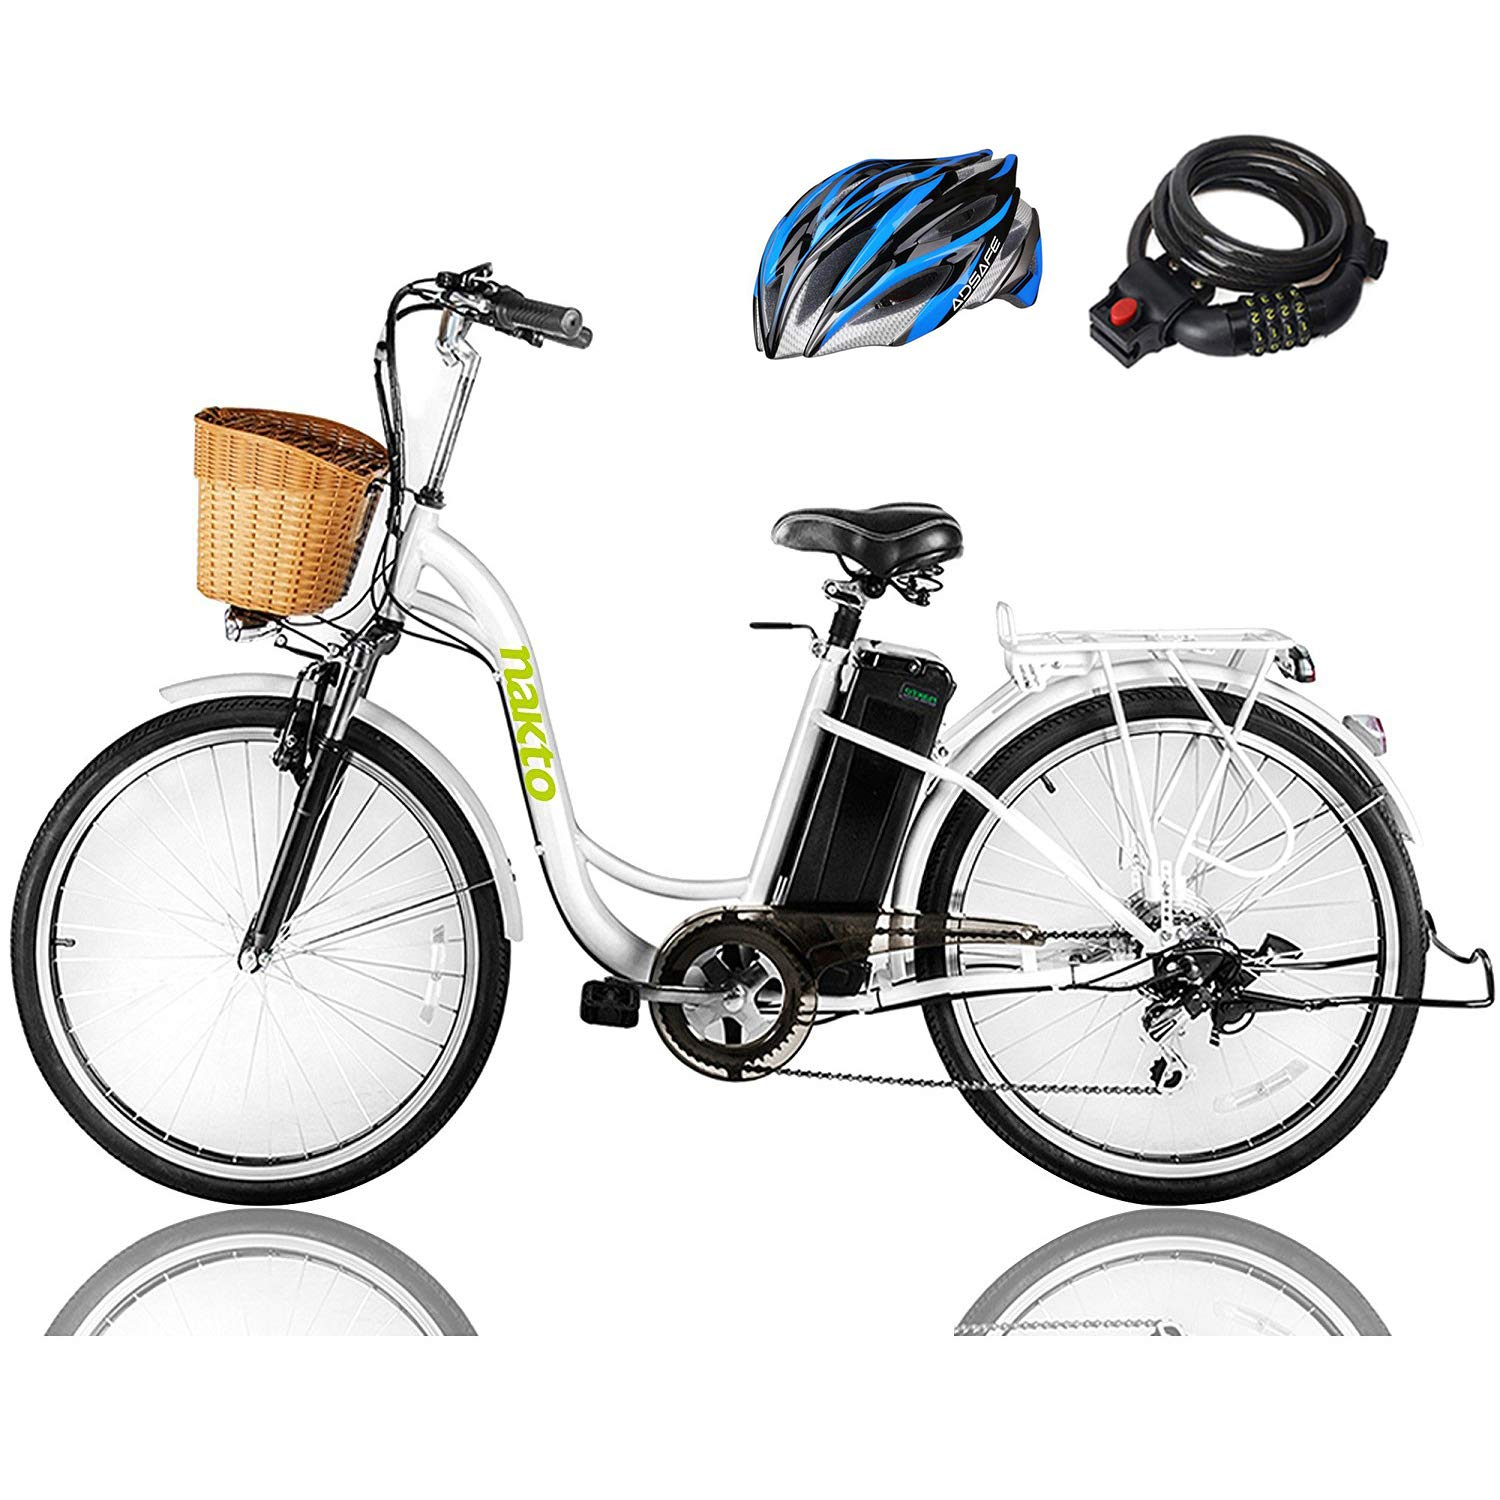 "NAKTO 26"" 250W Cargo Electric Bicycle Sporting Shimano 6 Speed Gear EBike Brushless Gear Motor"